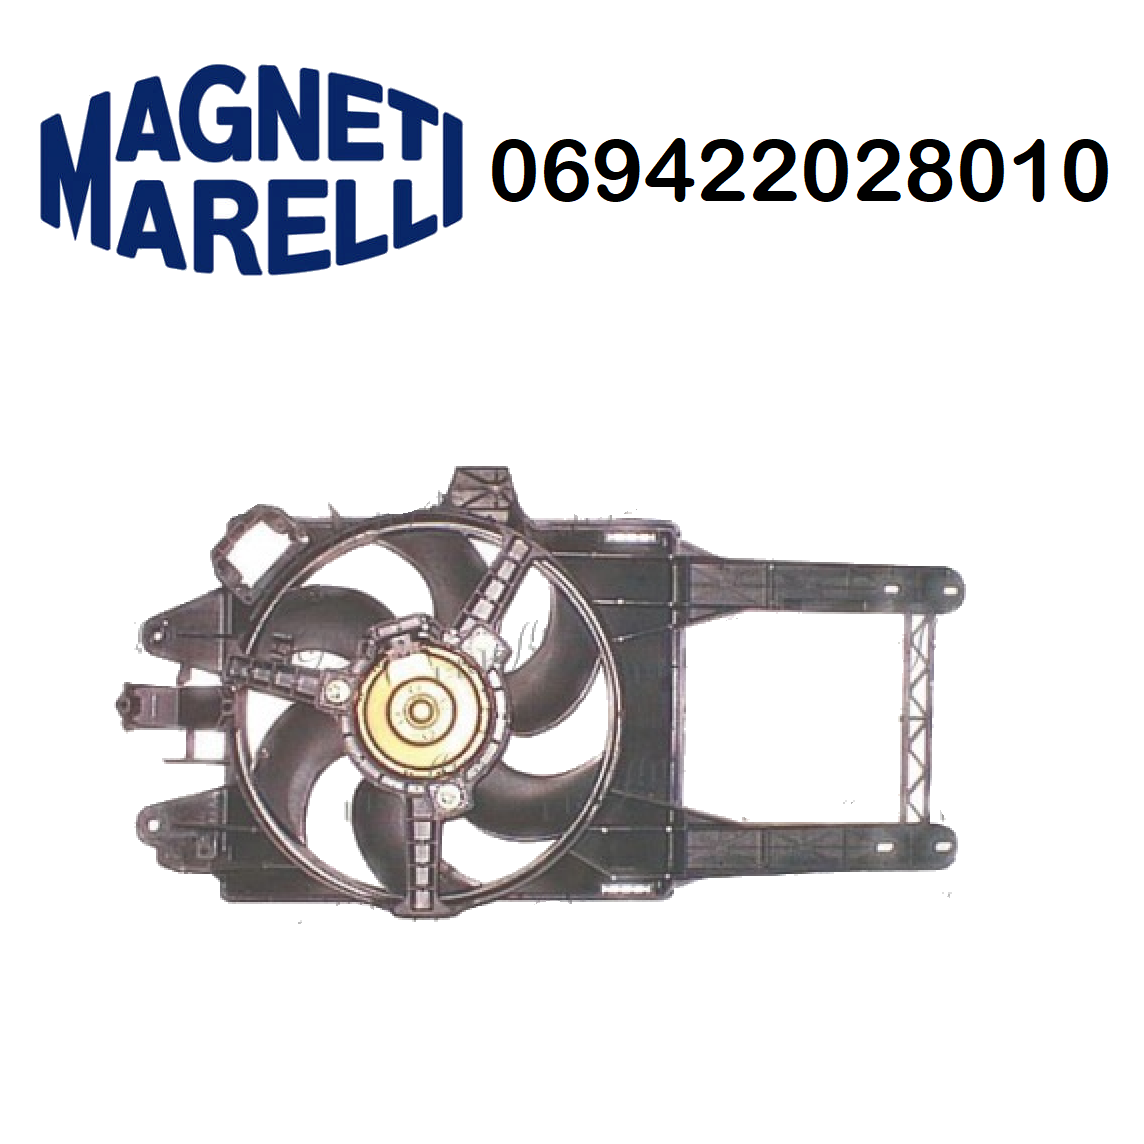 COOLING FAN ENGINE LANCIA Y 1.2 MAGNETI MARELLI FOR 46763323